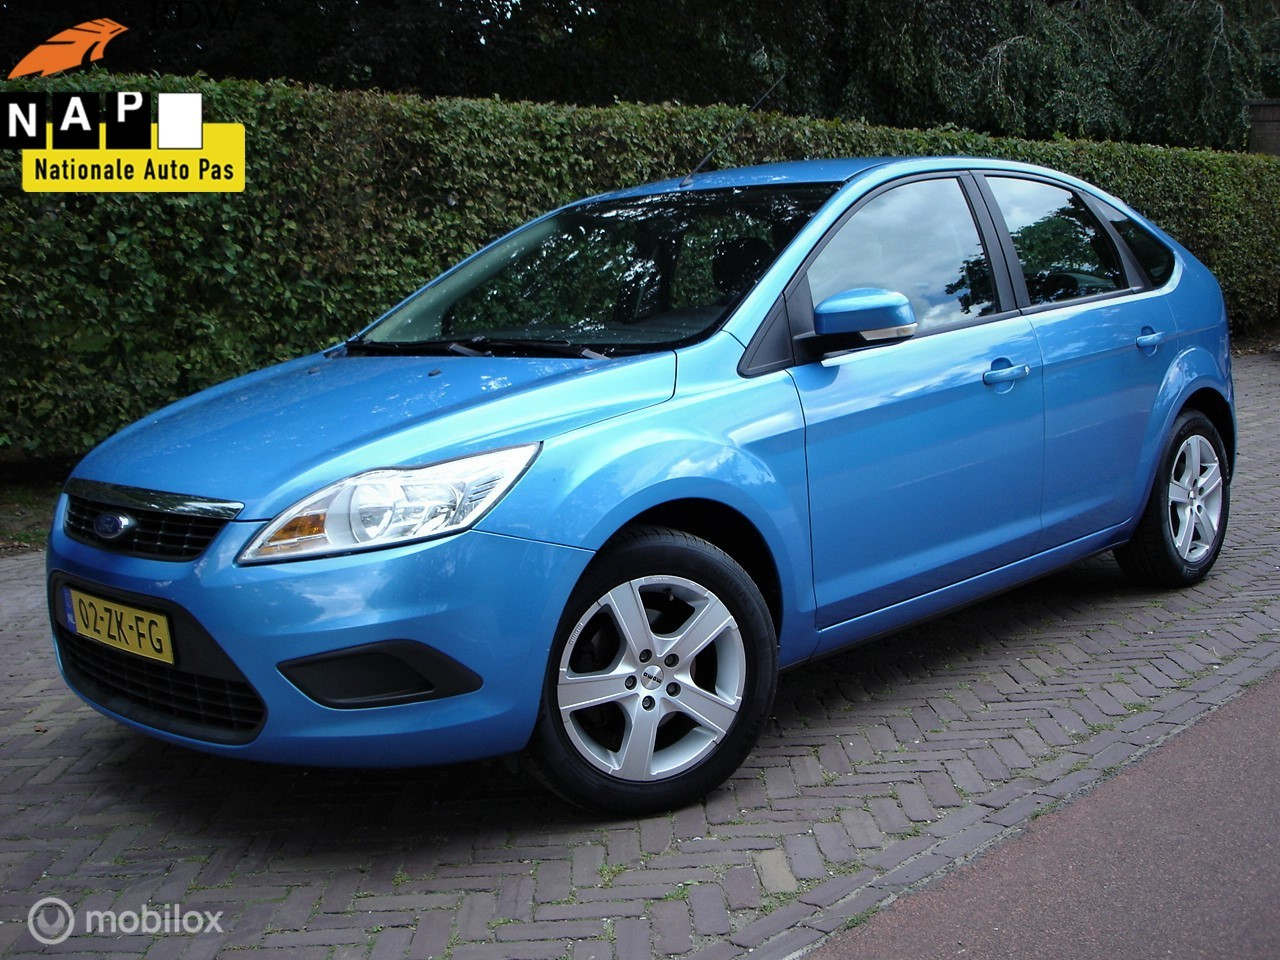 Ford Focus 1.6 Trend (Bj 2008') 5-Drs/Cruise/Etc. Plaatje !